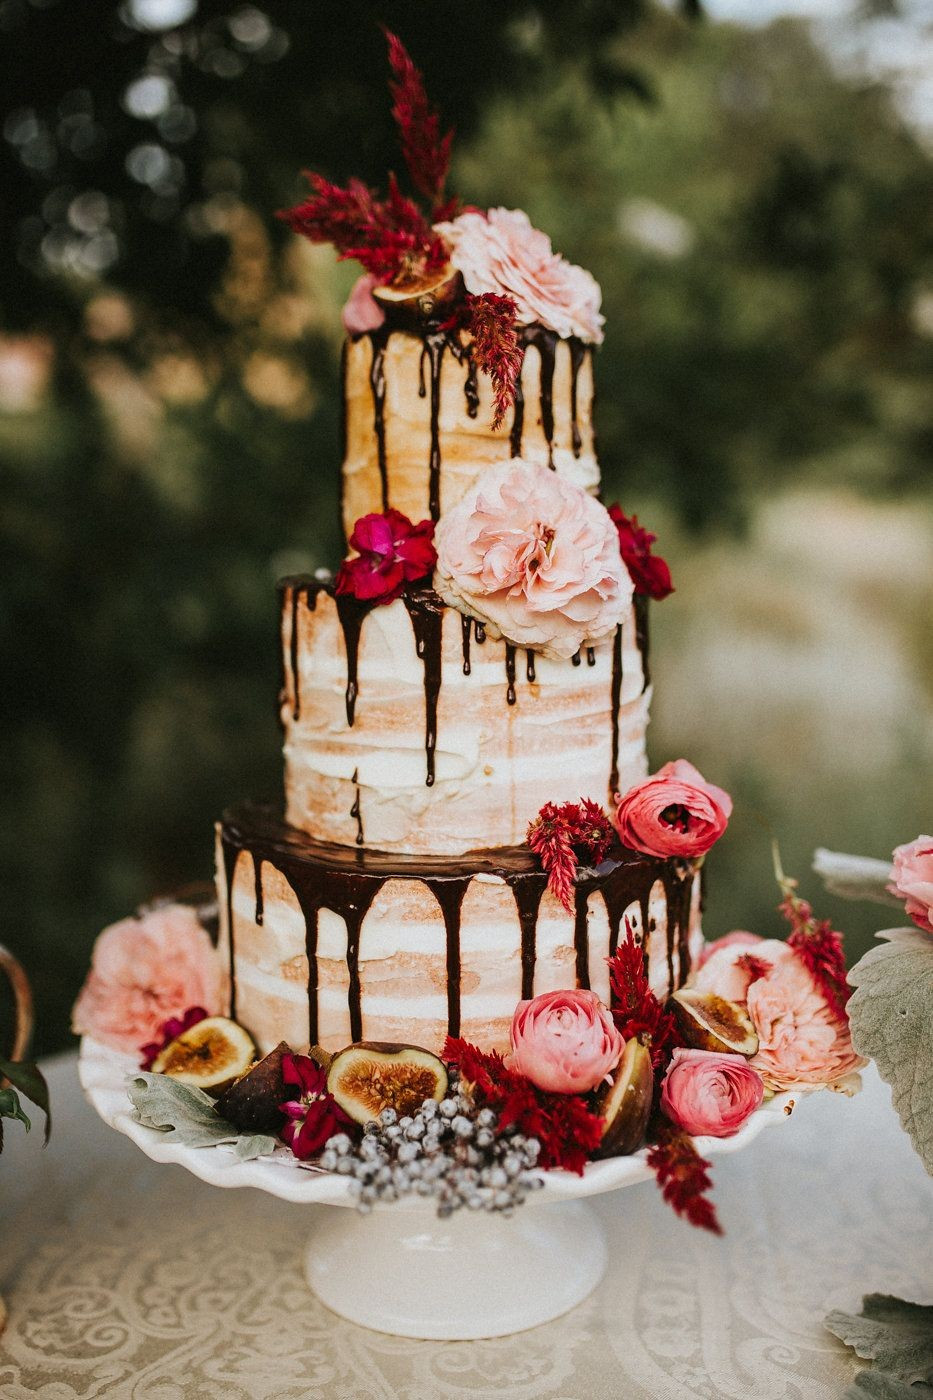 13 Stunning Wedding Cake Vases